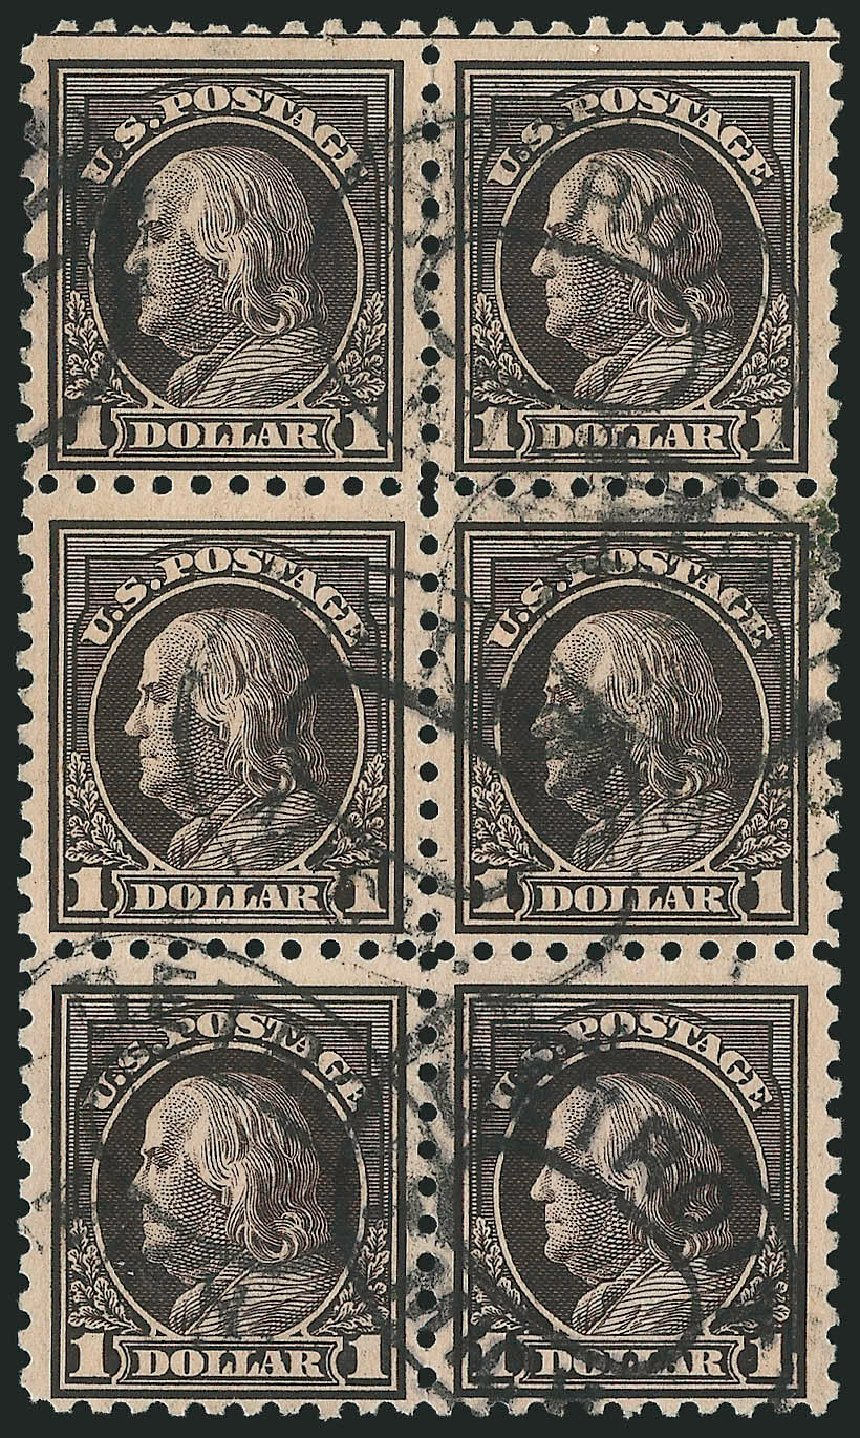 US Stamp Value Scott Catalogue 460 - US$1.00 1916 Franklin Perf 10. Robert Siegel Auction Galleries, Feb 2015, Sale 1093, Lot 377